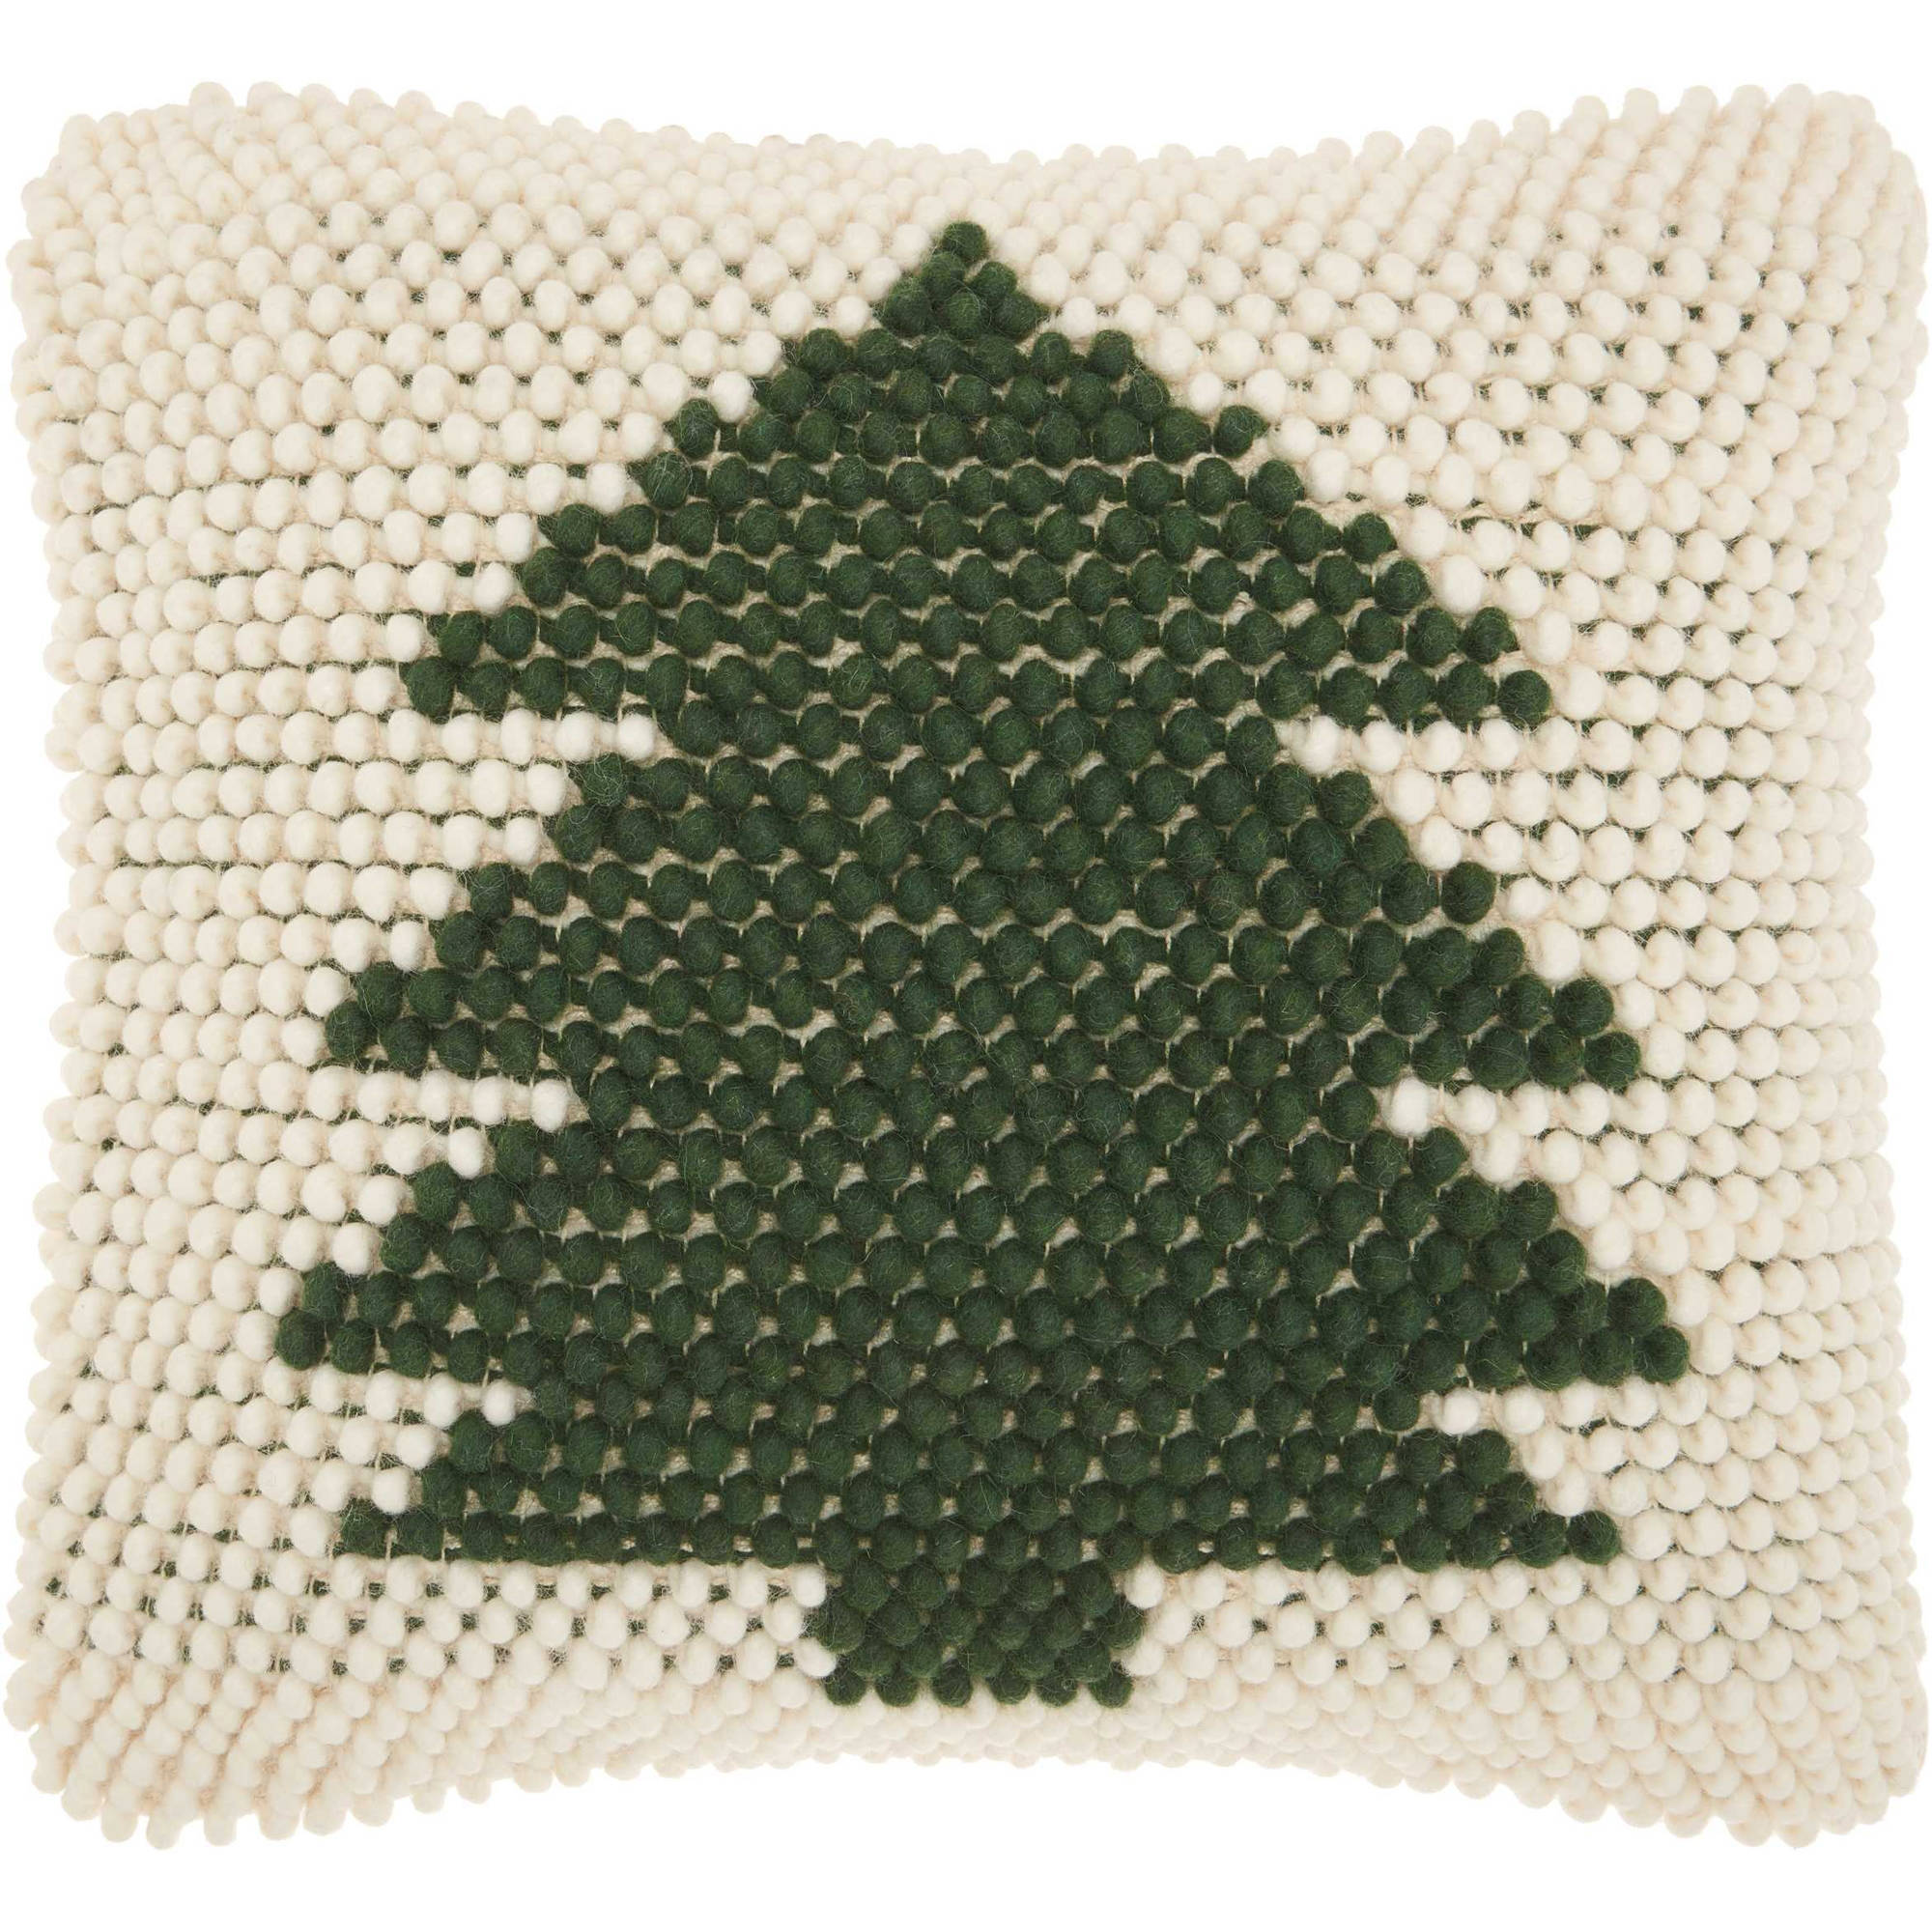 Nourison Home For The Holiday Christmas Tree Loops Throw Pillow, Green Ivory by Nourison